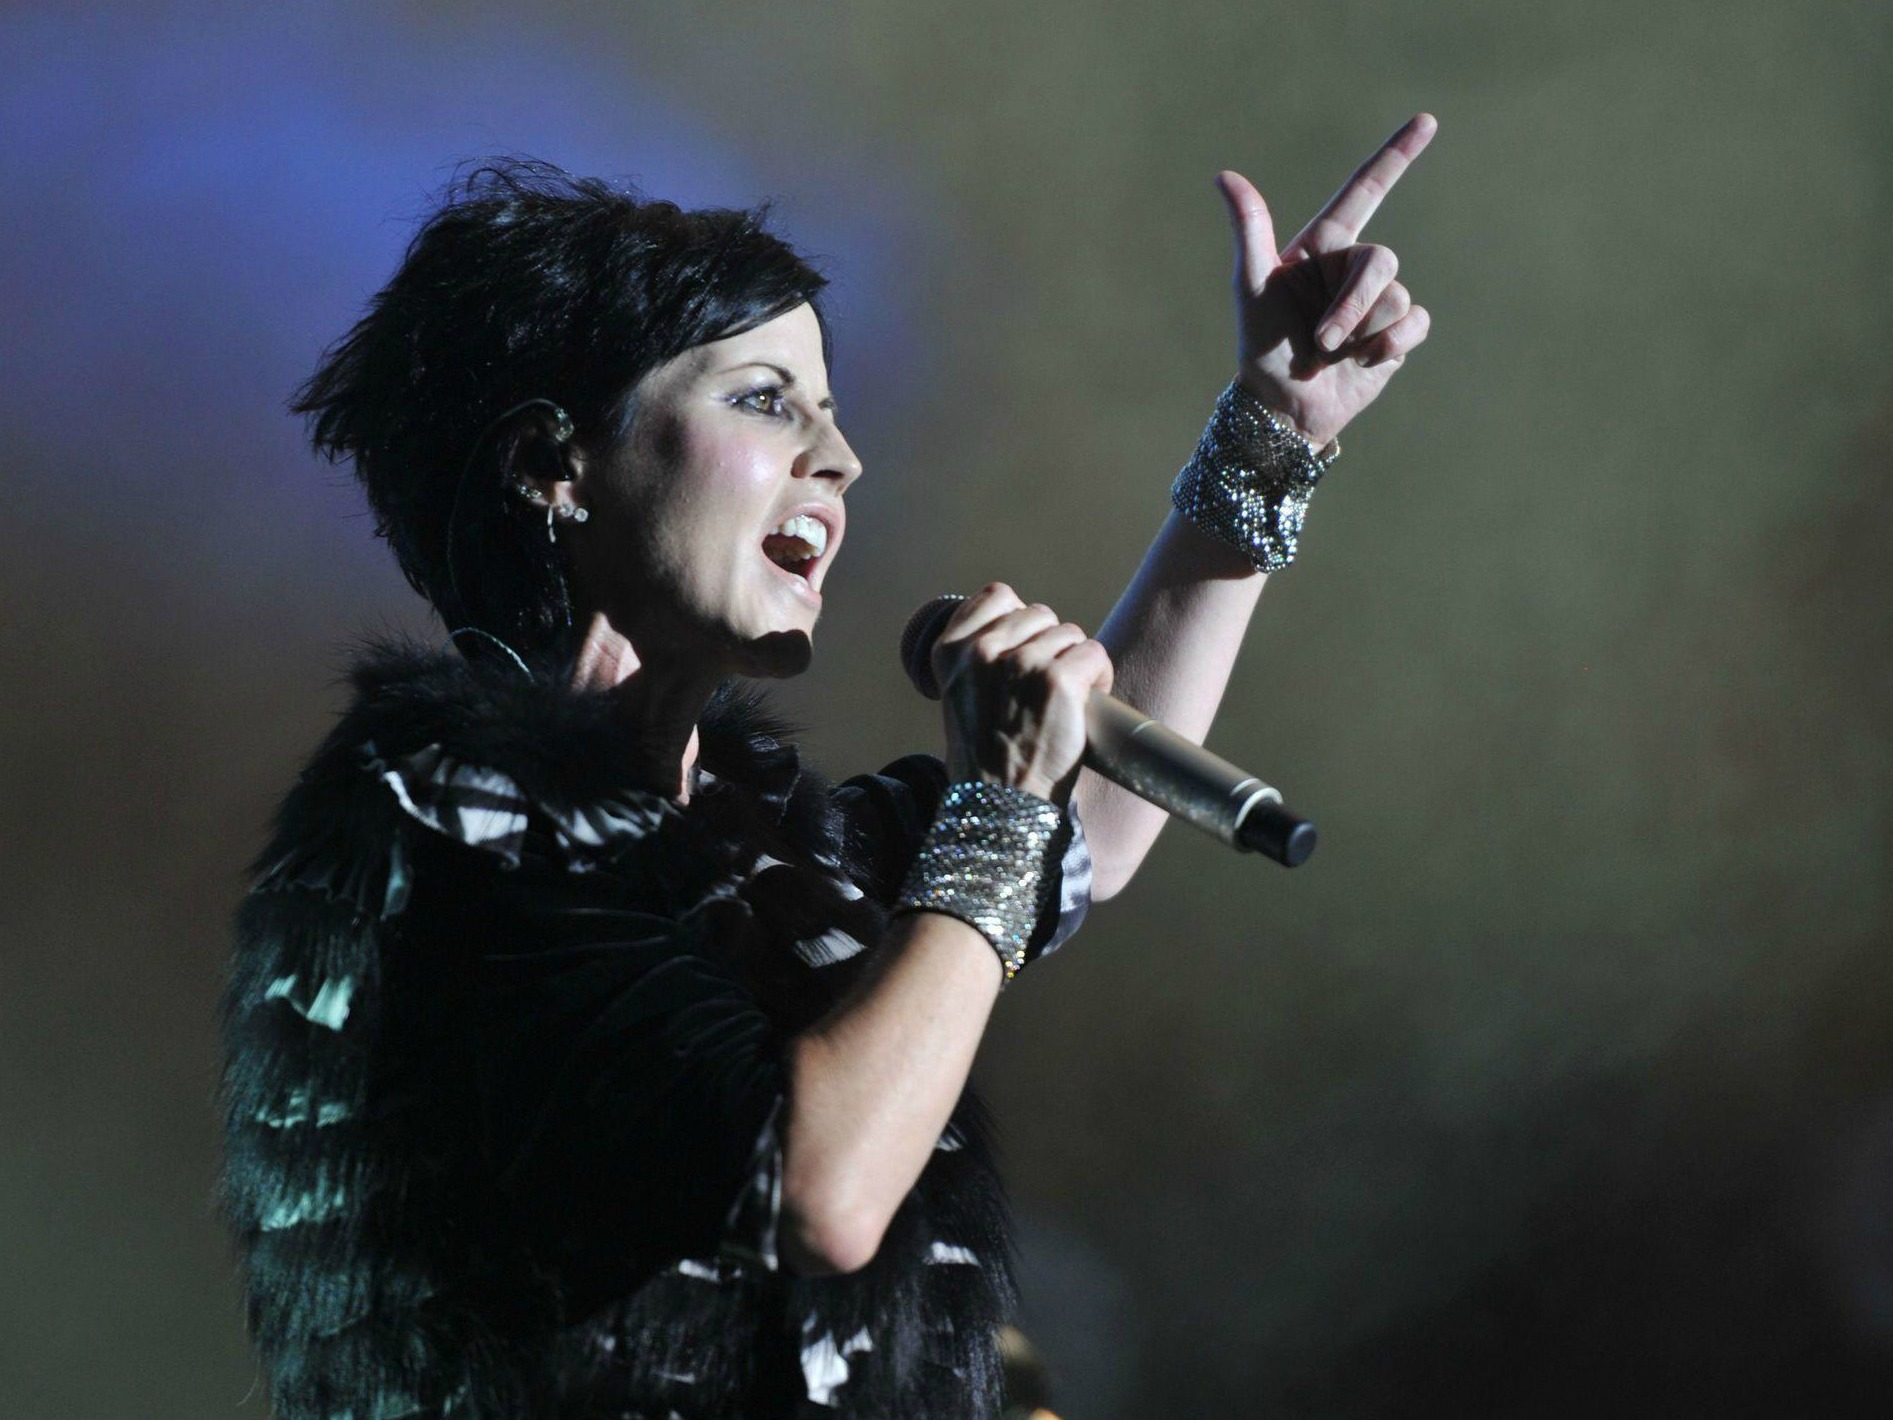 Honor Dolores O'Riordan's Memory With Some Of Her Greatest Hits